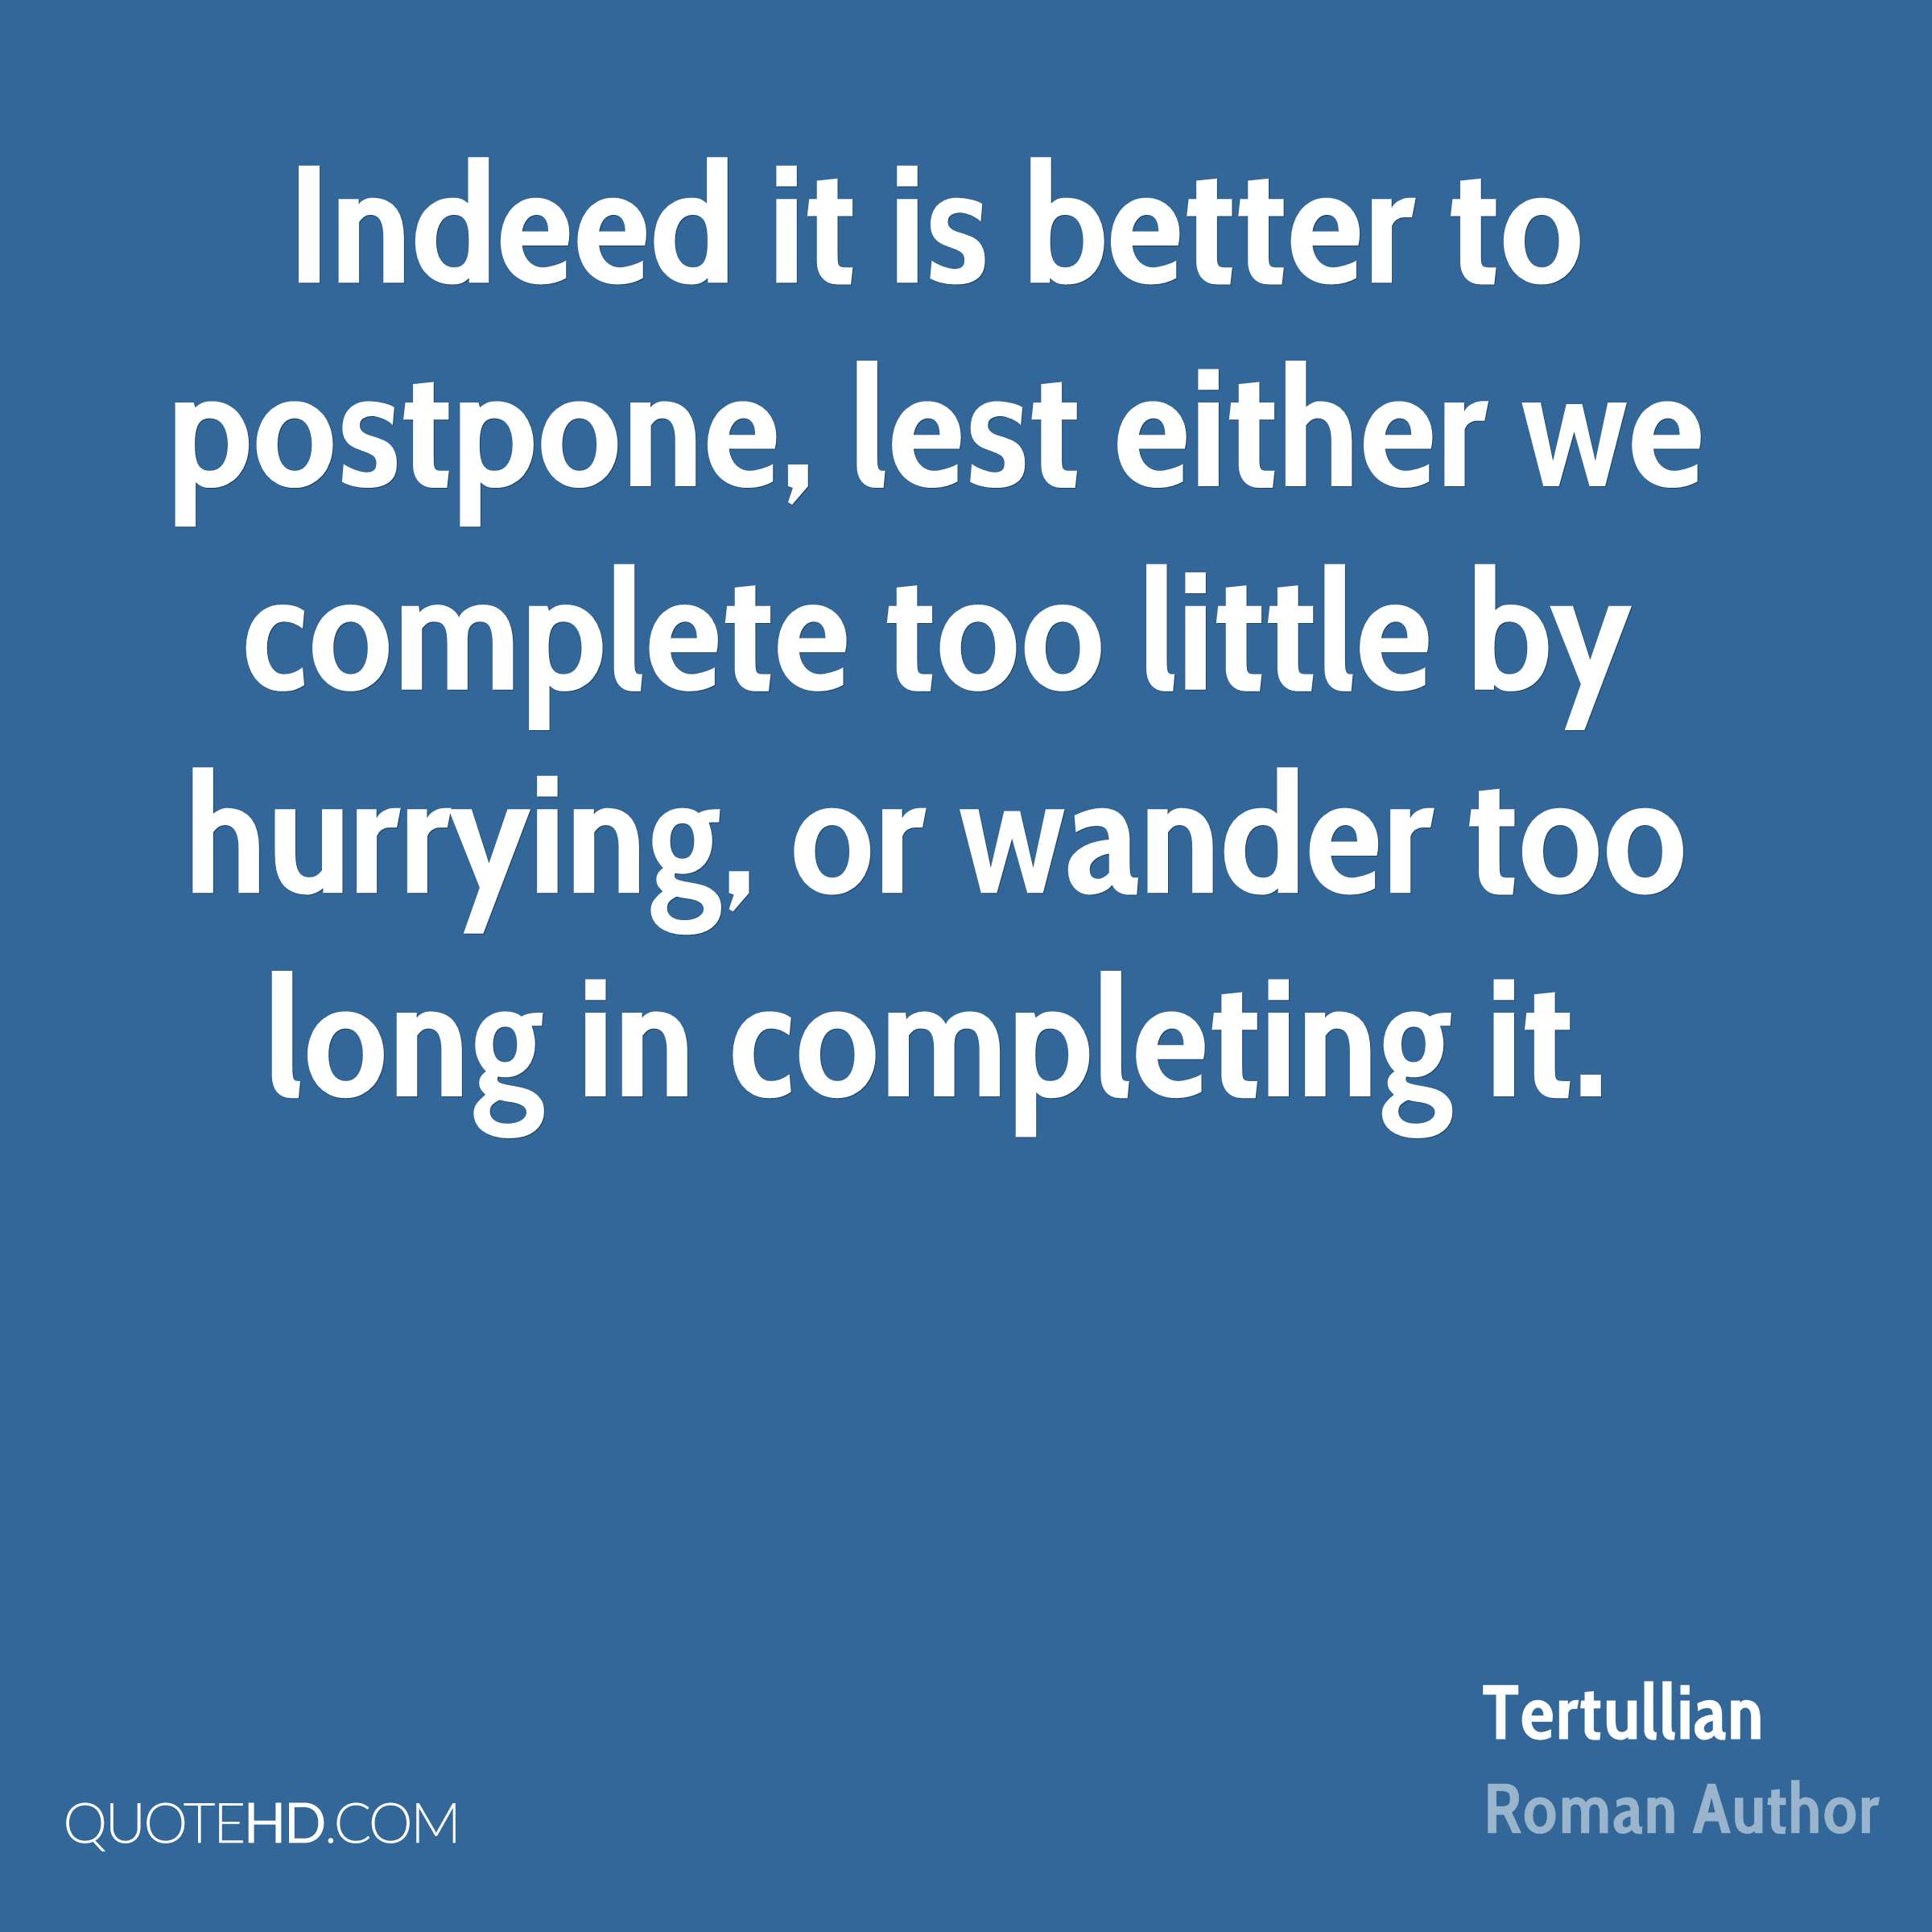 Indeed it is better to postpone, lest either we complete too little by hurrying, or wander too long in completing it.